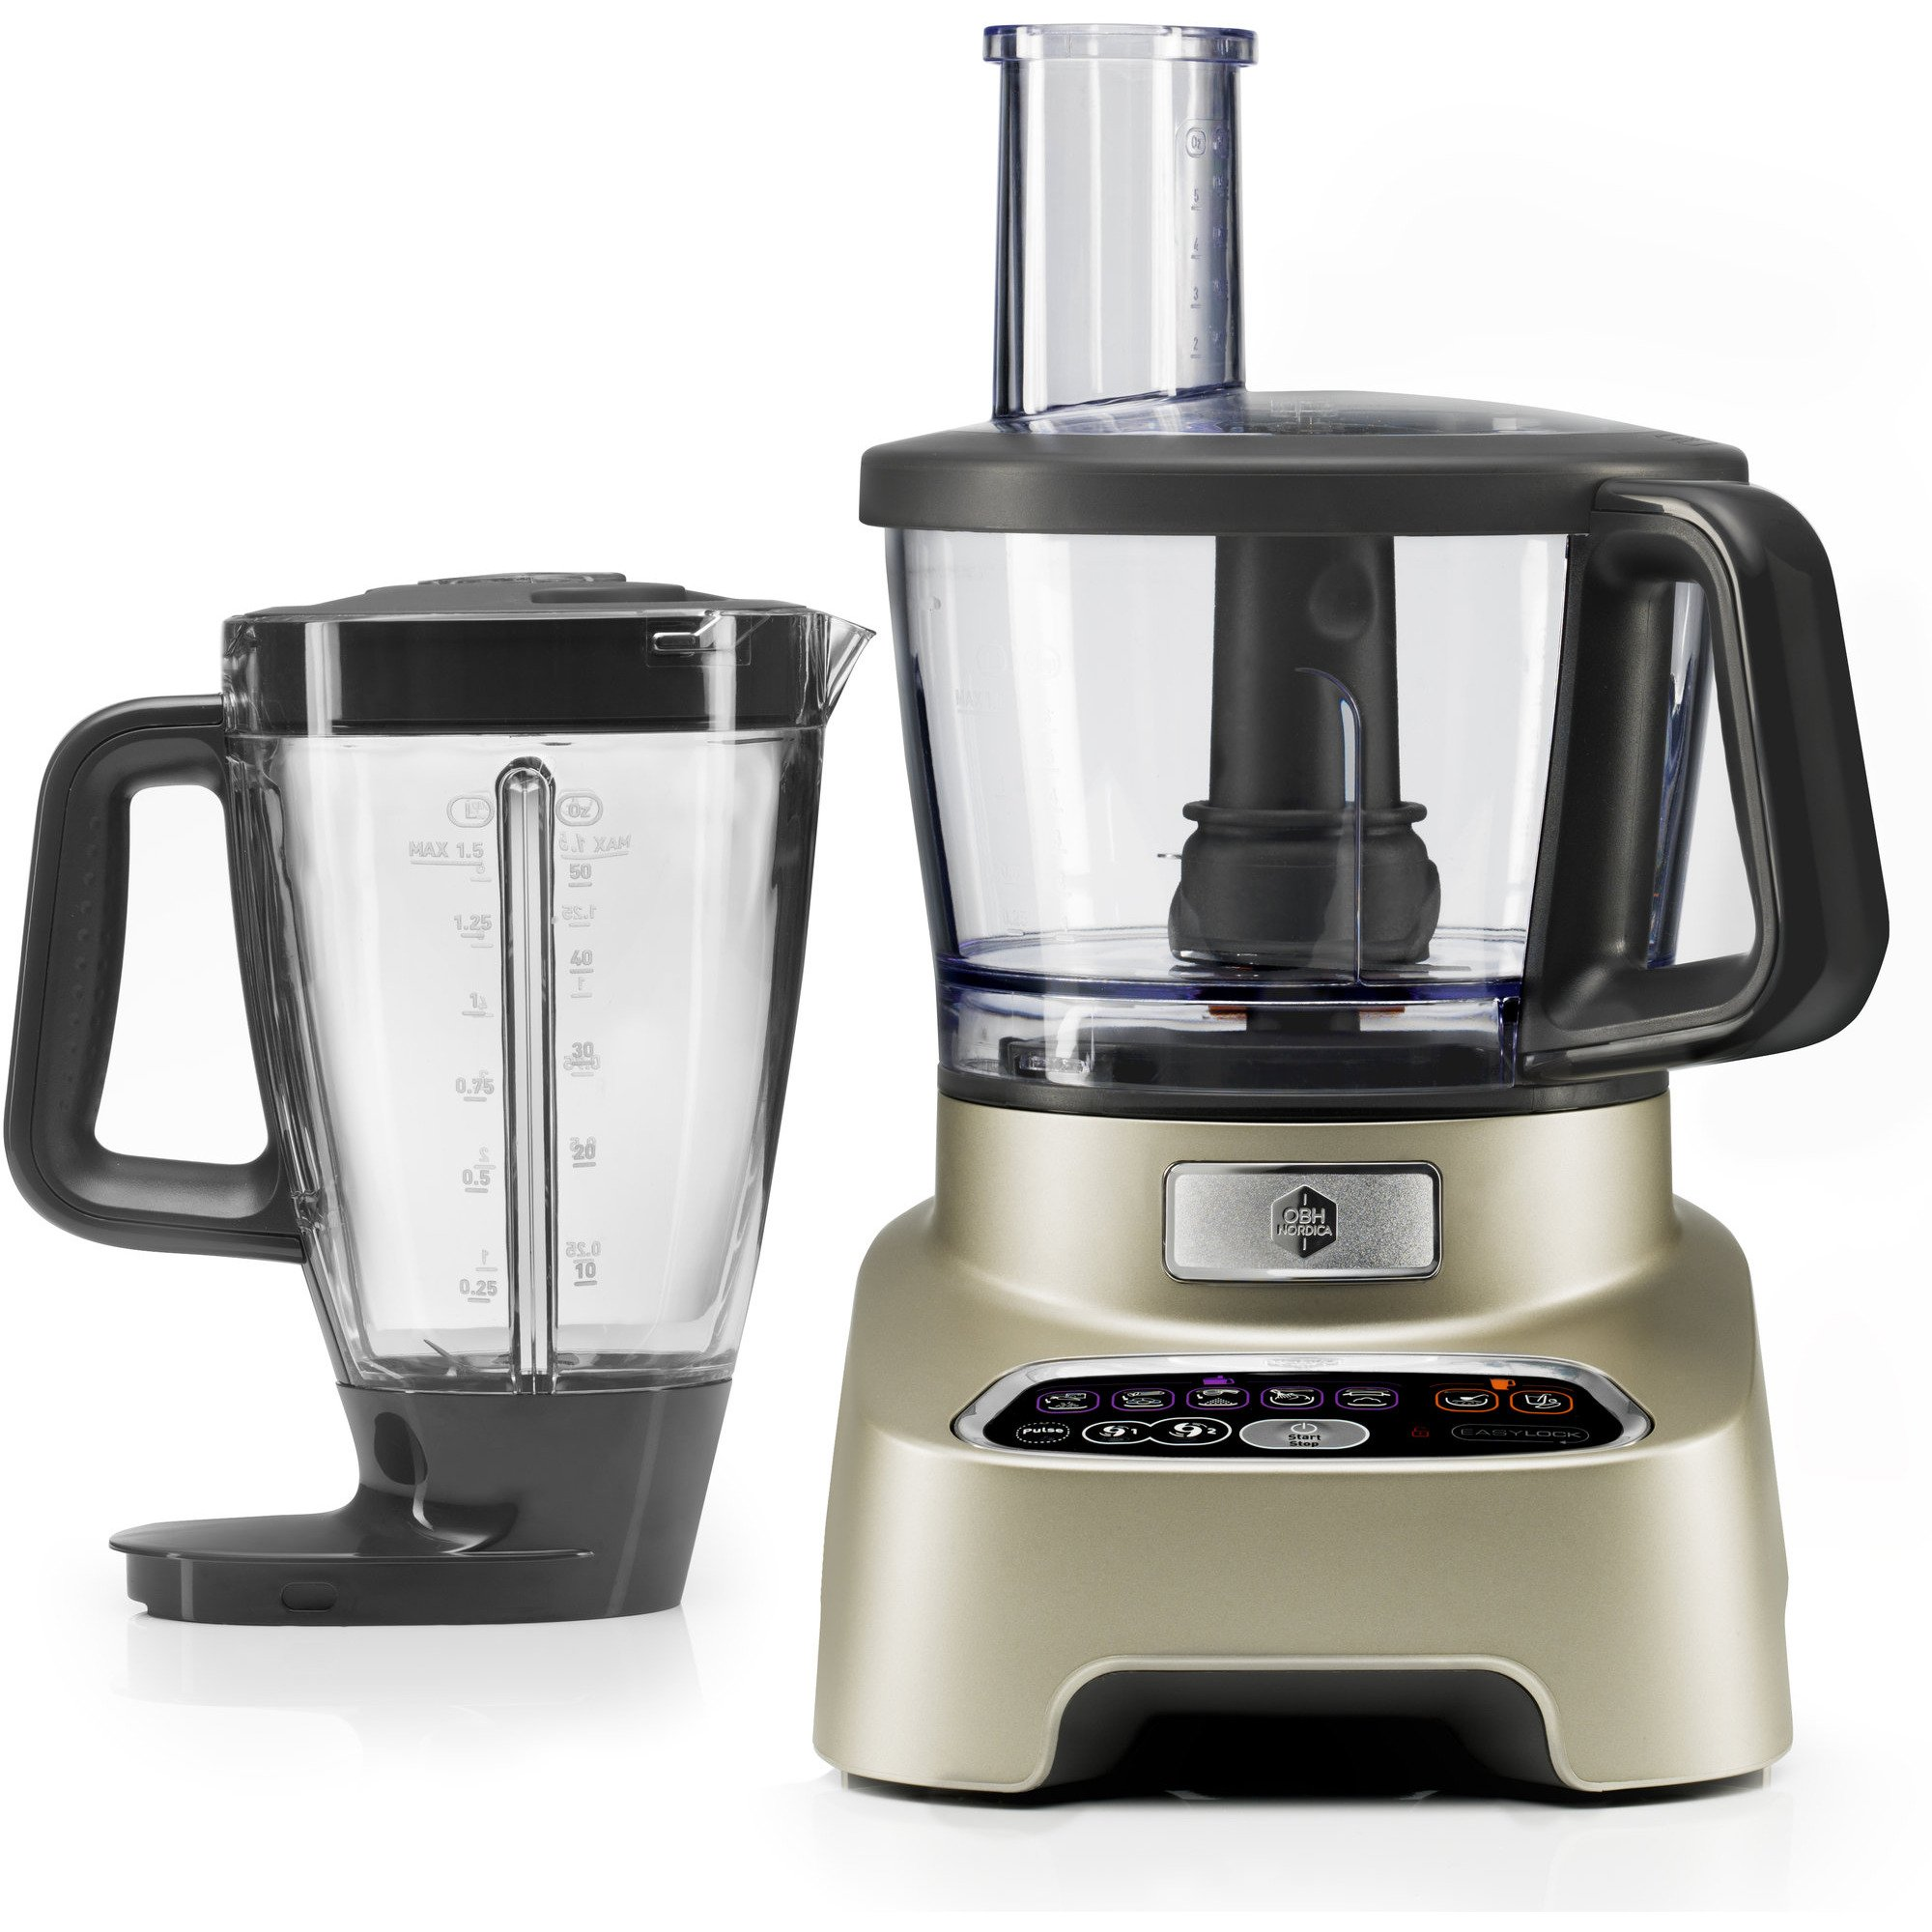 OBH Double Force food processor metal